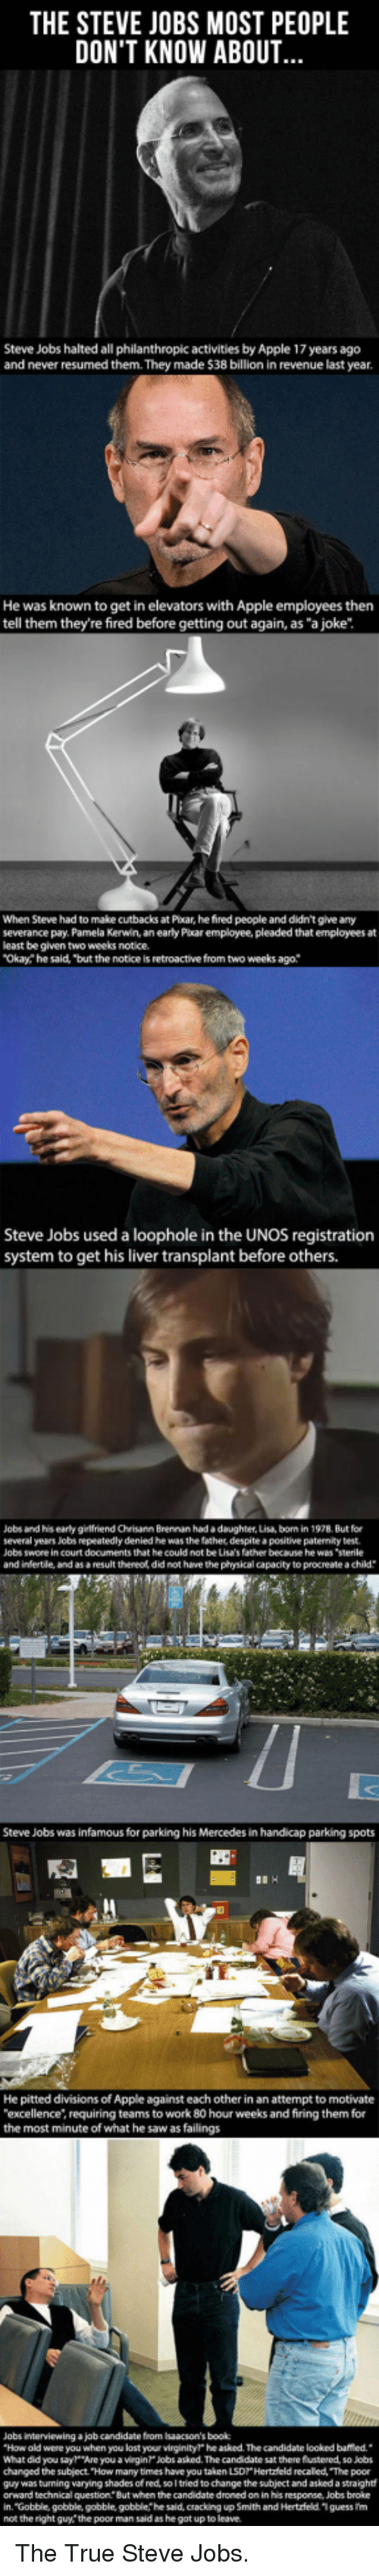 """what did you say: THE STEVE JOBS MOST PEOPLE  DON'T KNOW ABOUT  Steve Jobs halted all philanthropic activities by Apple 17 years ago  and never resumed them. They made $38 billion in revenue last year.  He was known to get in elevators with Apple employees then  tell them they're fired before getting out again, as """"a joke"""".  When Steve had to make cutbacks at Pixar, he fired people and didn't give any  severance pay. Pamela Kerwin, an early Poar employee, pleaded that employees at  least be given two weeks notice.  Okay, he said, """"but the notice is retroactive from two weeks ago  Steve Jobs used a loophole in the UNOS registration  system to get his liver transplant before others.  Jobs and hs early girlfriend Chrisann Brennan had a daughter, Lisa, bon in 1978. But for  several years Jobs repeatedly denied he was the father despite a positive paternity test  Jobs swore in court documents that he could not be Lisea's father because he was """"sterile  and infertile, and as a result thereot did not have the physical capacity to procreate a child  Steve Jobs was infamous for parking his Mercedes in handicap parking spots  He pitted divisions of Apple against each other in an attempt to motivate  excellence, requiring teams to work 80 hour weeks and firing them for  the most minute of what he saw as failings  Jobs interviewing a job candidate feom saacson's booke  """"How old were you when you lost yourvirginity"""" he asked. The candidate looked baffted  What did you say? """"Are you a viegin?"""" Jobs asked. The candidate sat there flustered, so Jobs  changed the subject. """"How many times have you taken LSD?"""" Hertzfeld recalled, The poor  guy was turming varying shades of red, so I tried to change the subject and asked a straight  orward technical question But when the candidate droned on in his response, Jobs broke  in. """"Gobble, gobble, gobble, gobble,he said, cracking up Smith and Hertrfeld 1 guess I'm  not the right guys"""" the poor man said as he got up to leave. <p>The True Steve """